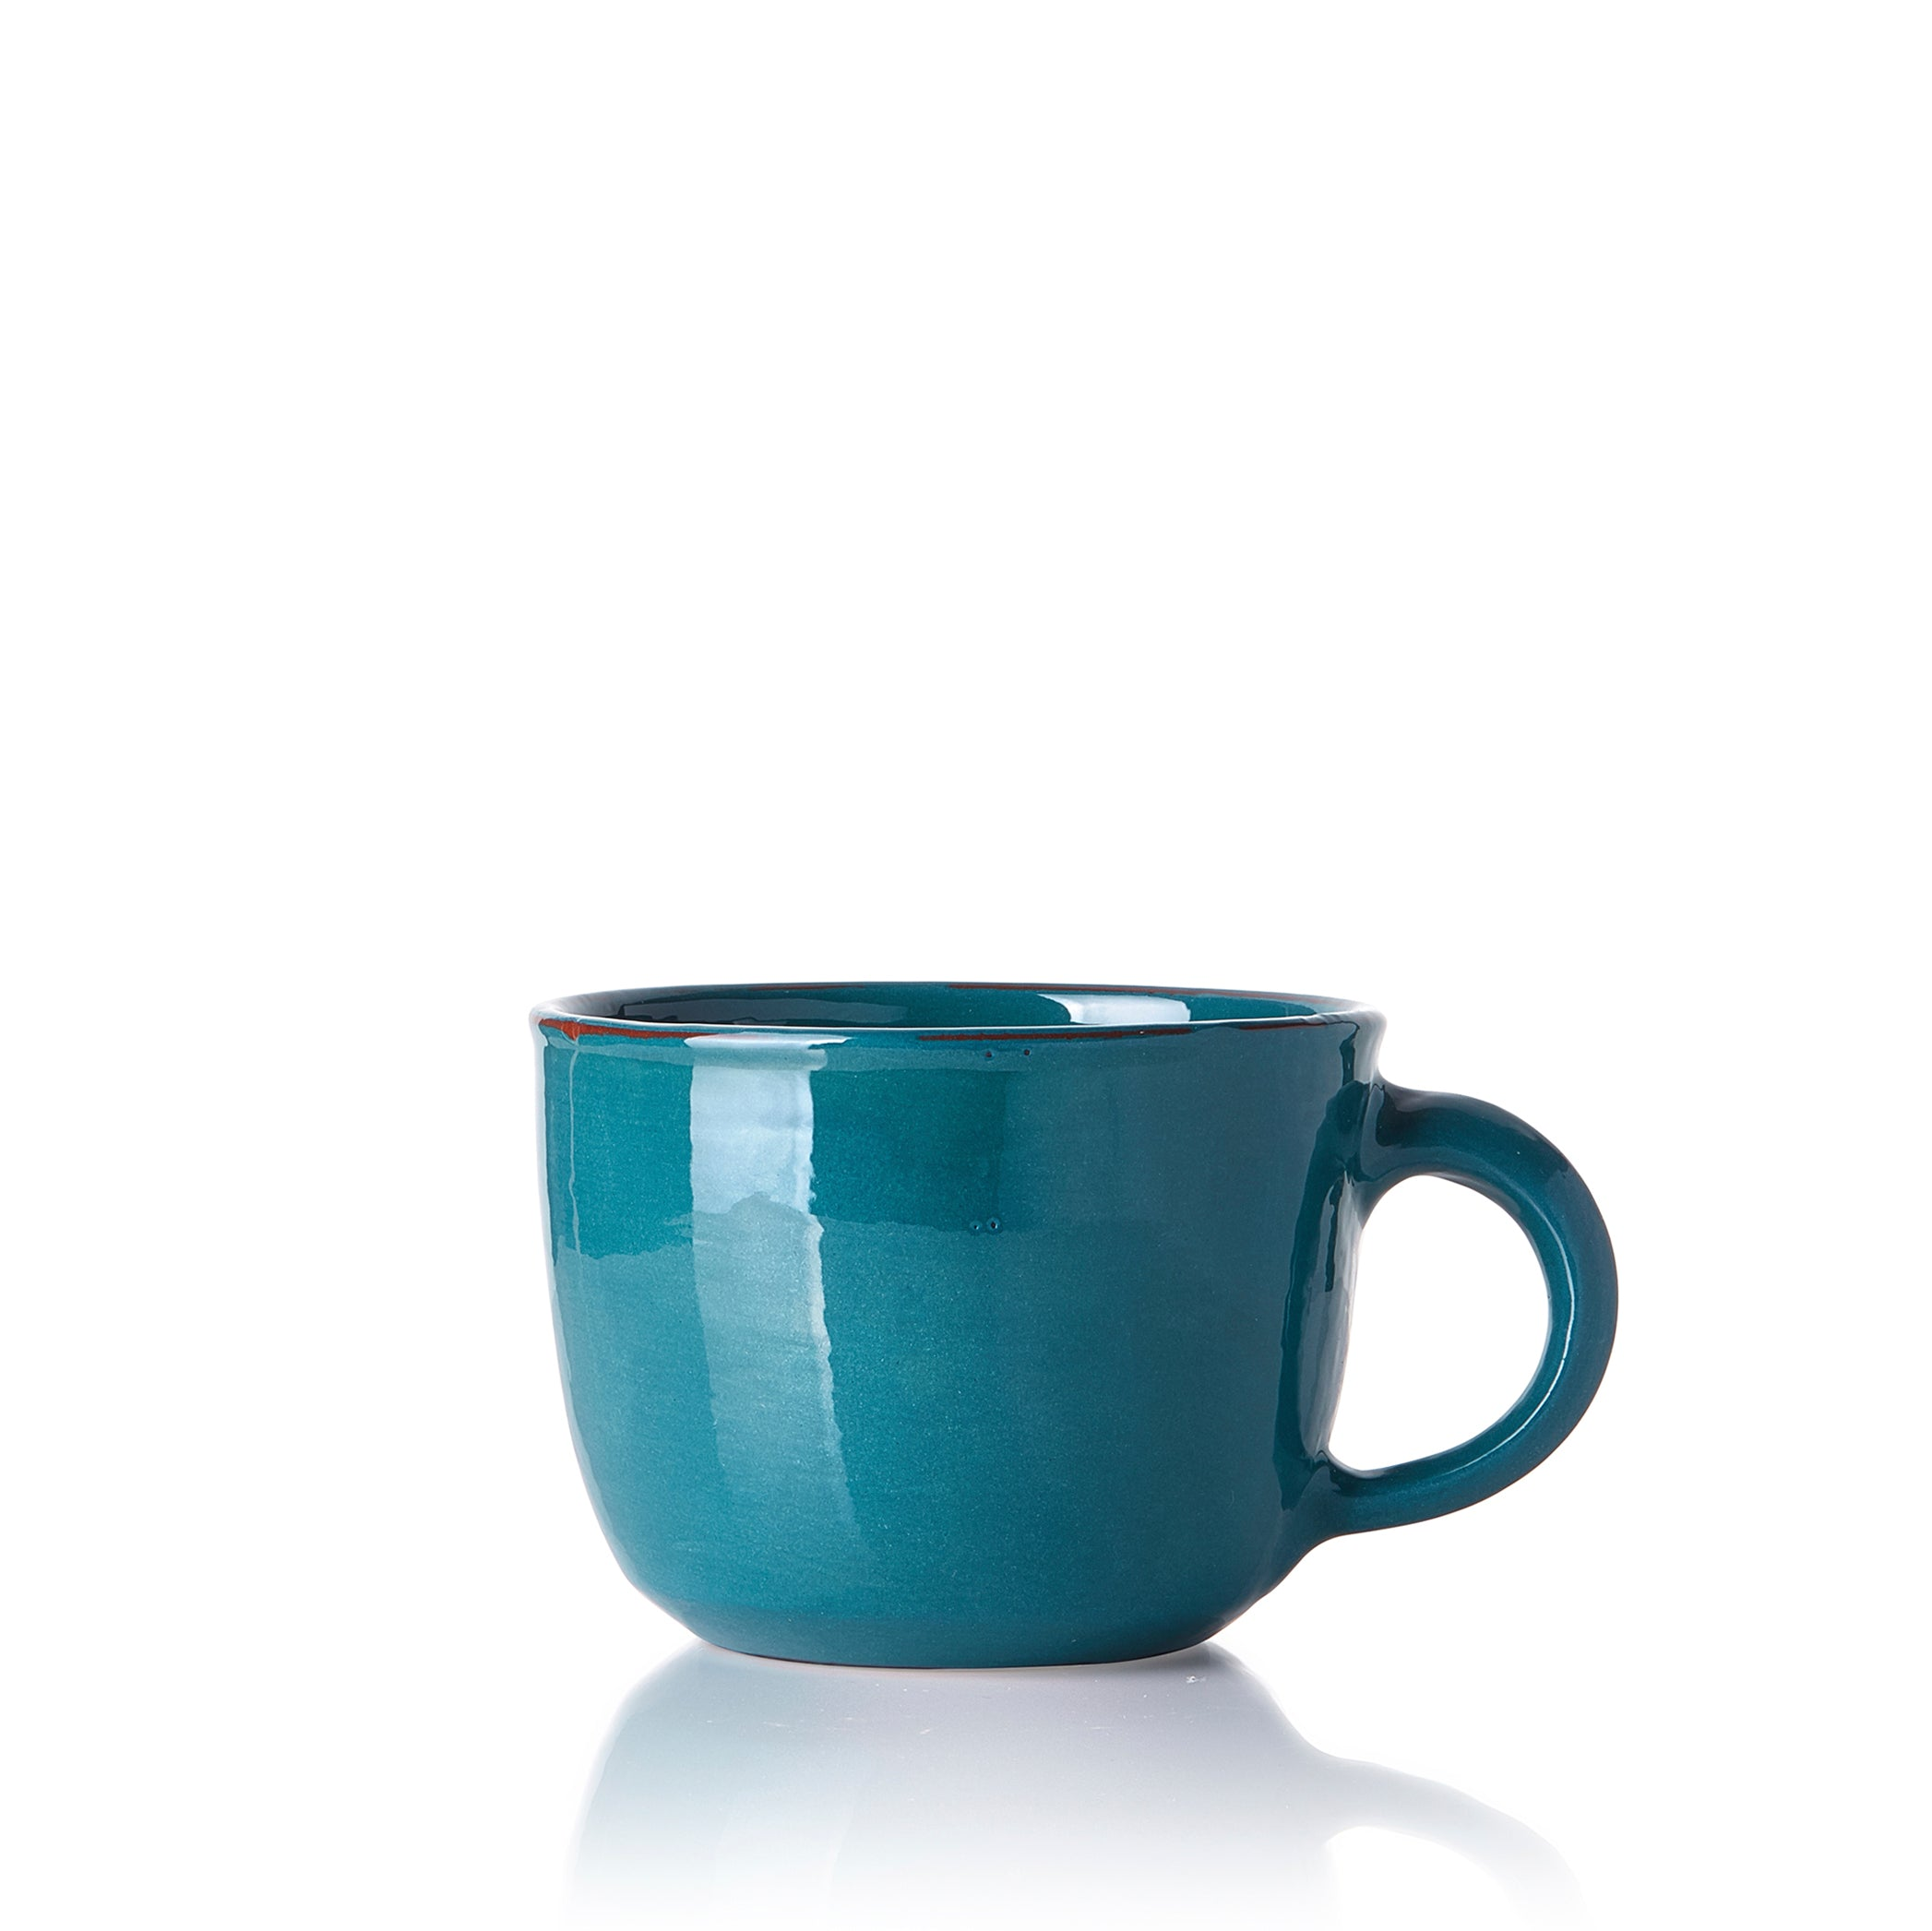 Hot Chocolate Mug in Blue